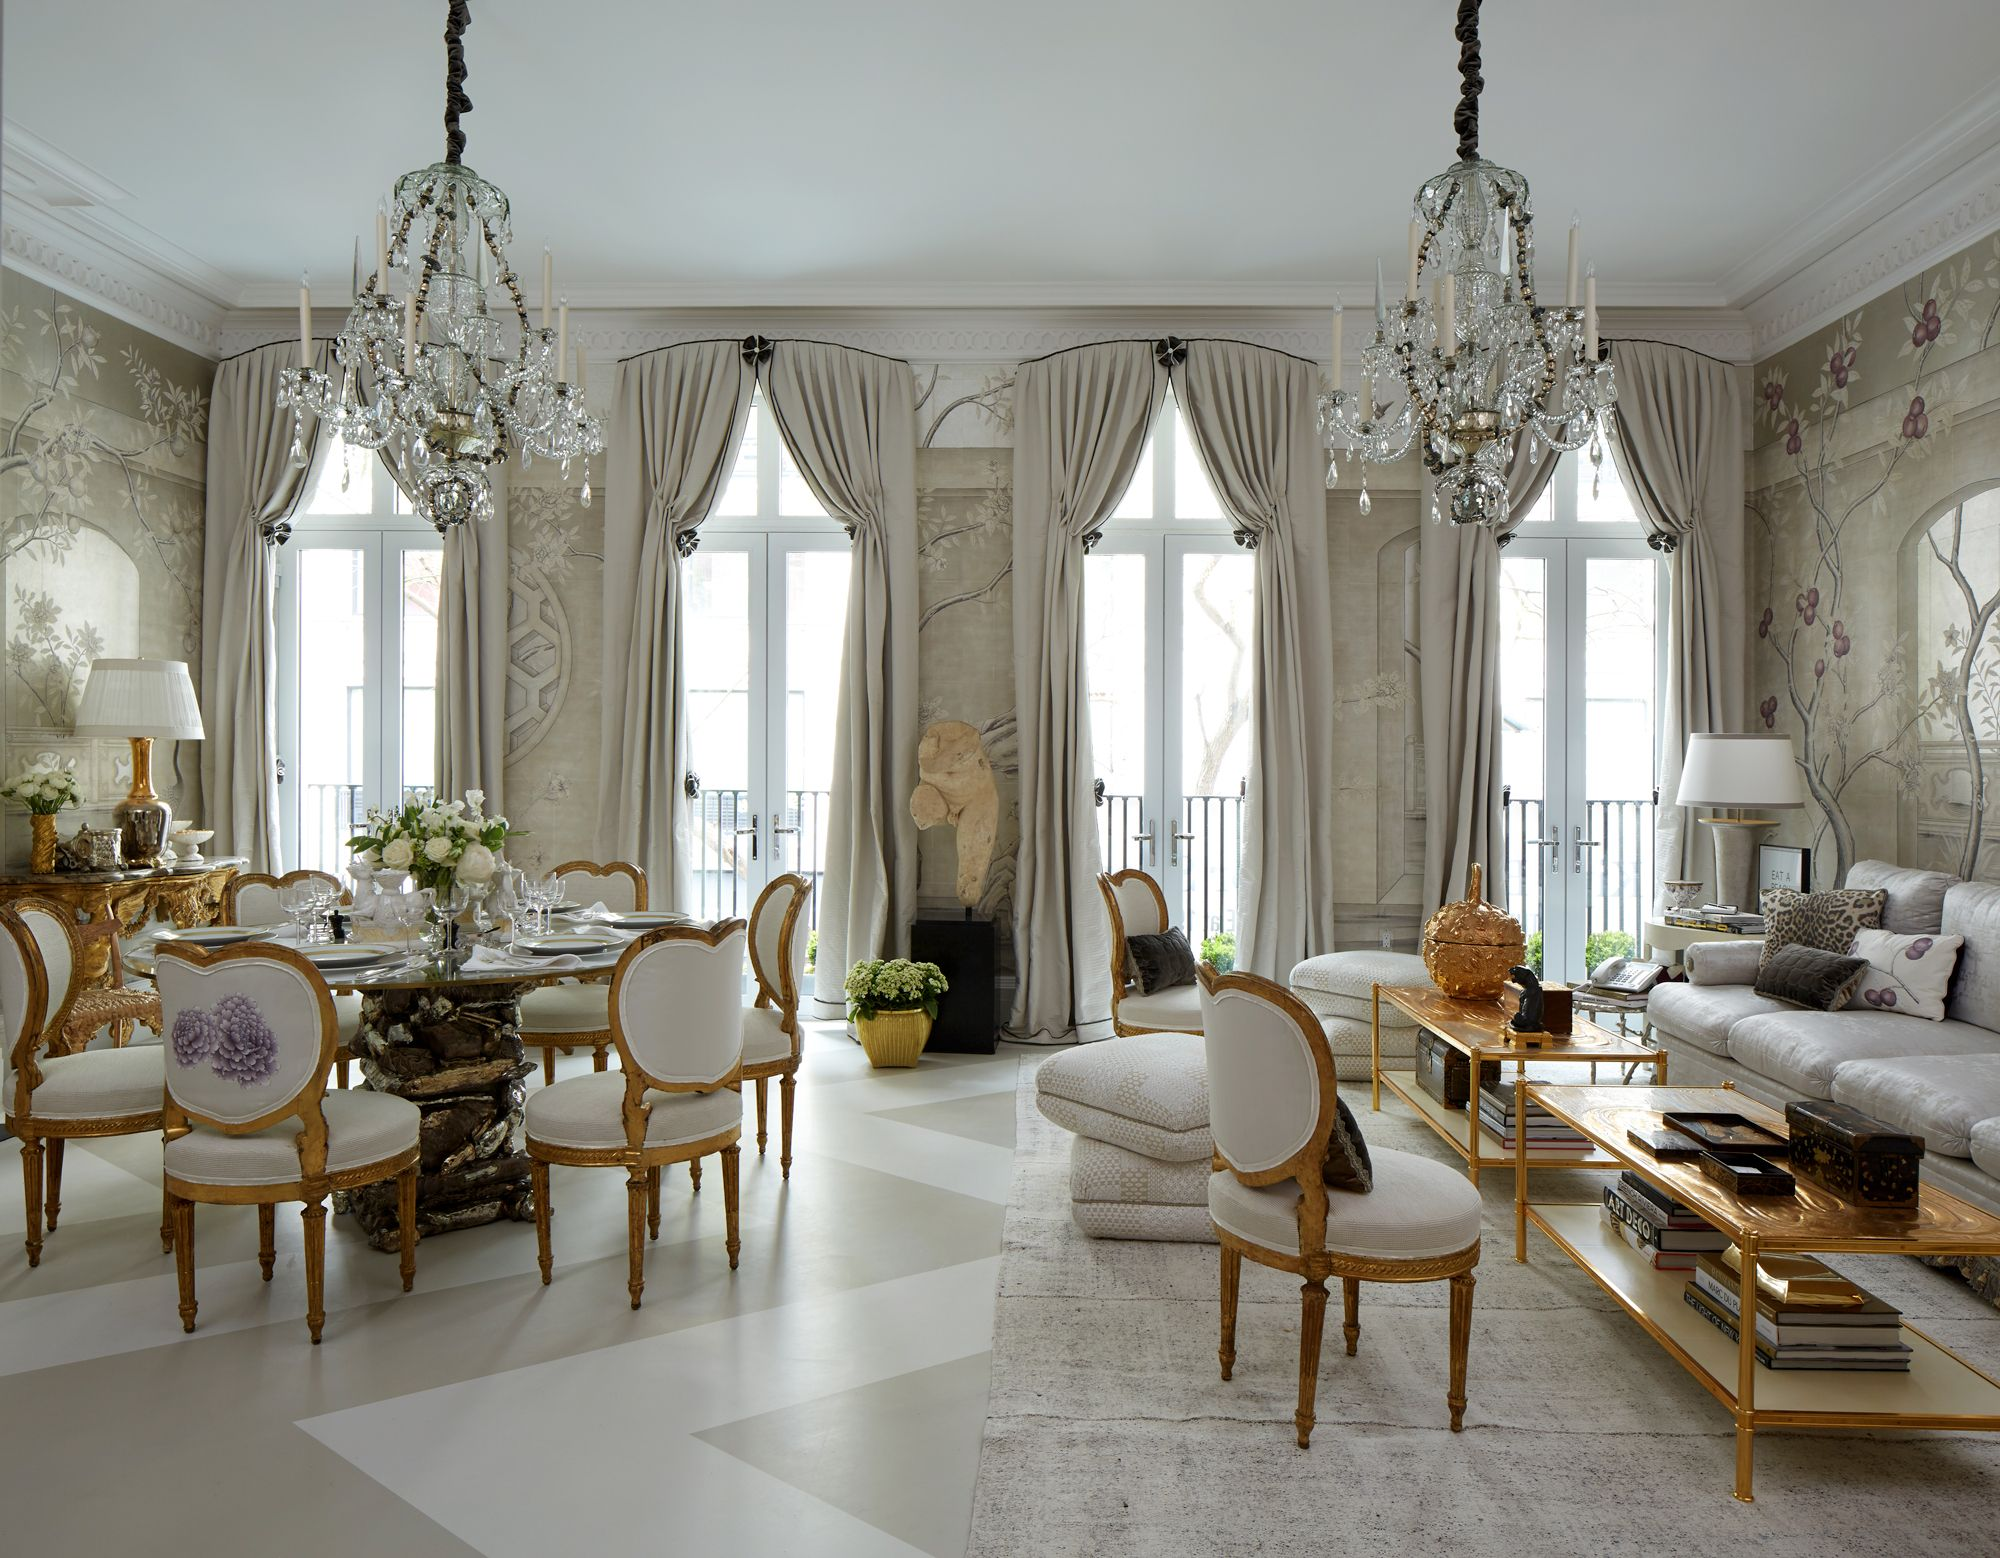 16 Gorgeous Home Decor Tips from A-List Decorators - Dress the curtains   - from InStyle.com